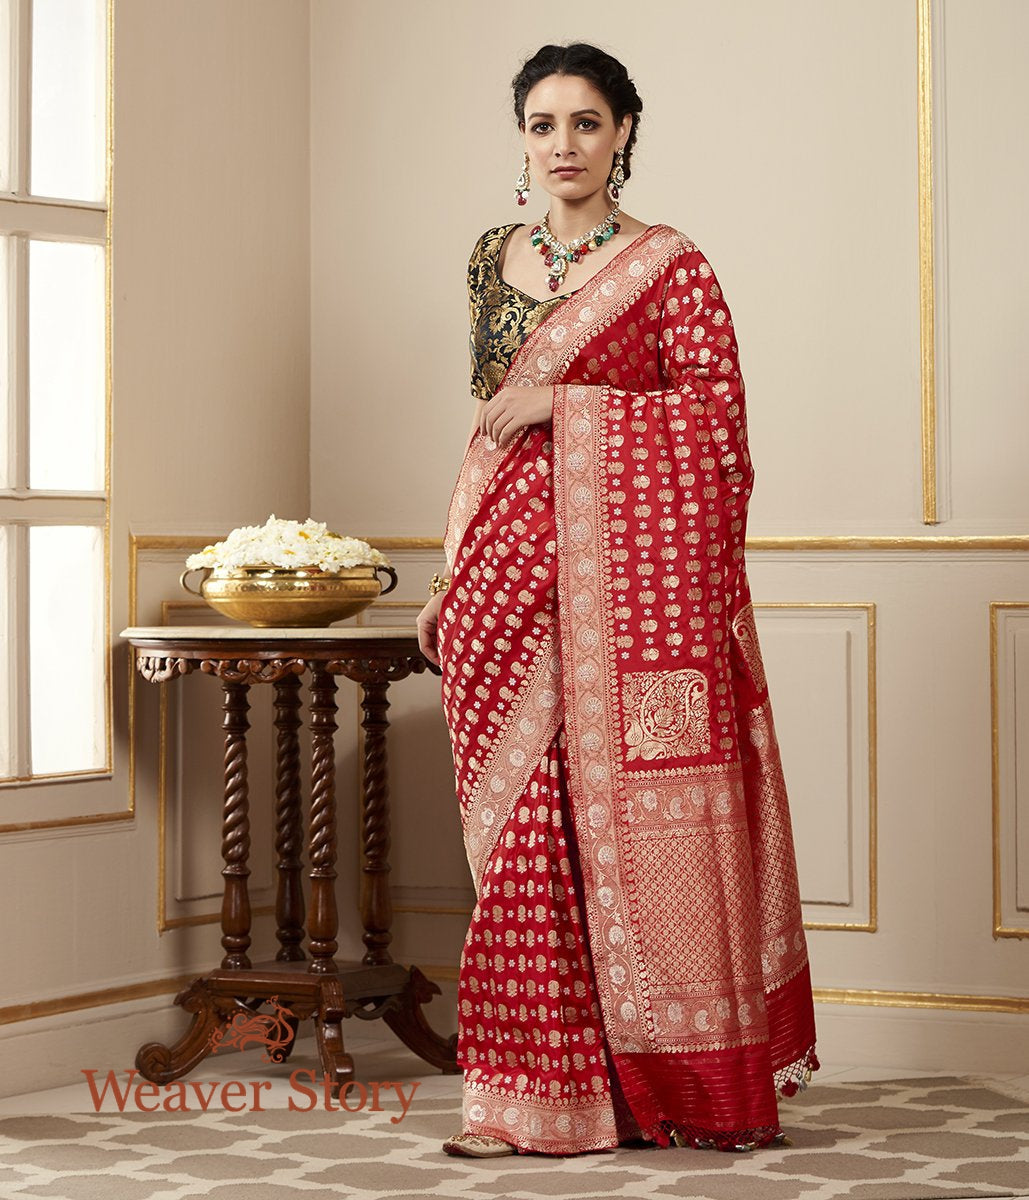 Handwoven Red Kadhwa Jangla Saree with Floral Paisleys